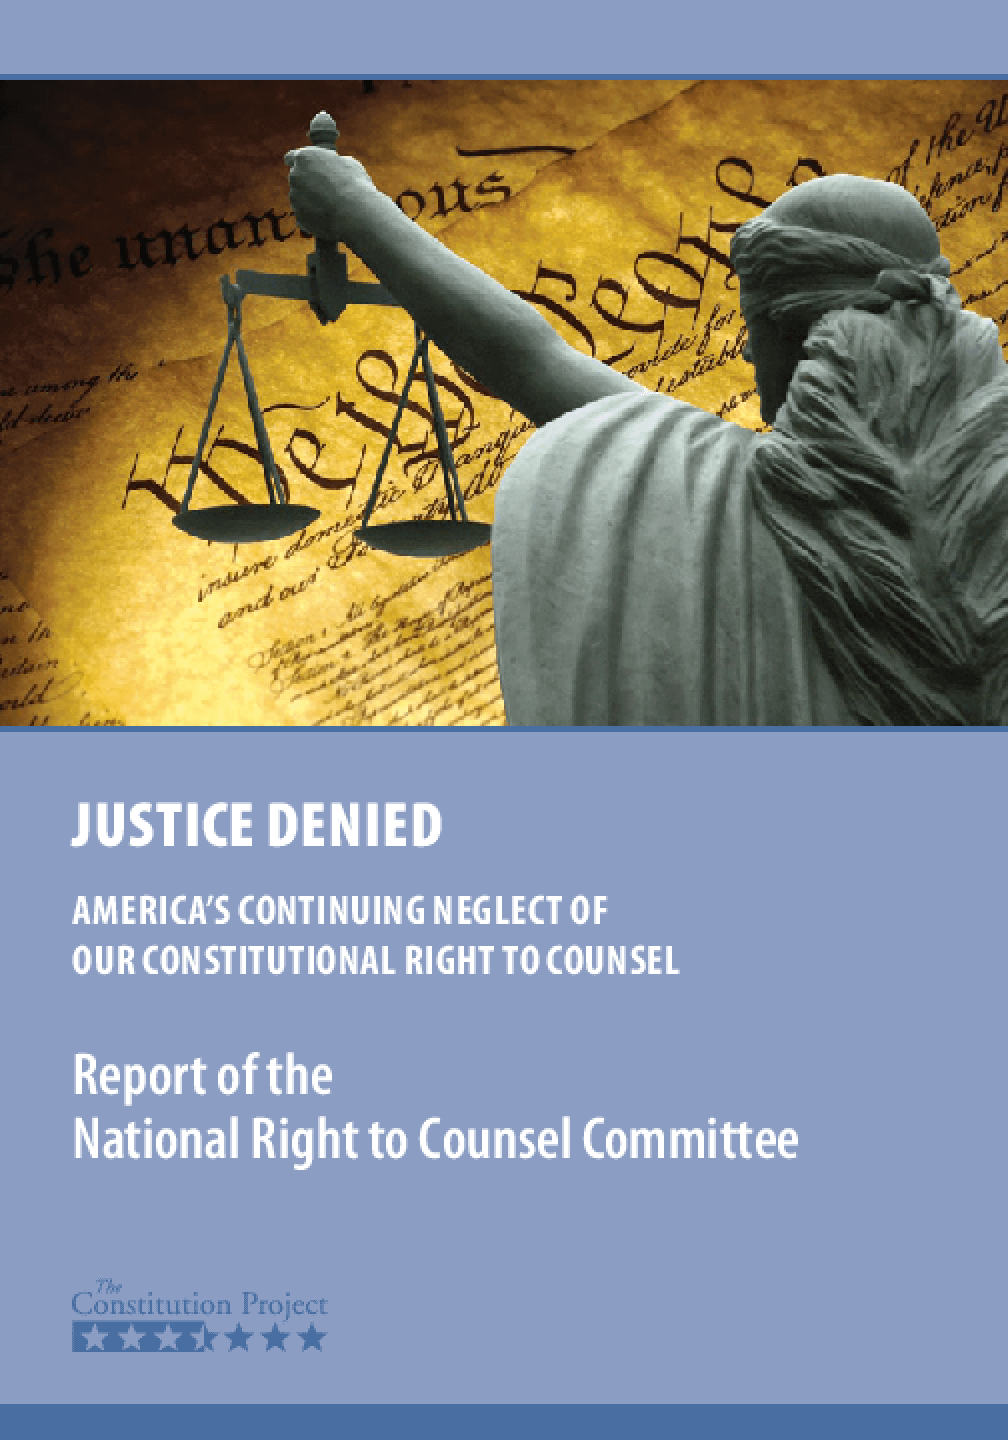 Justice Denied: America's Continuing Neglect of Our Constitutional Right to Counsel